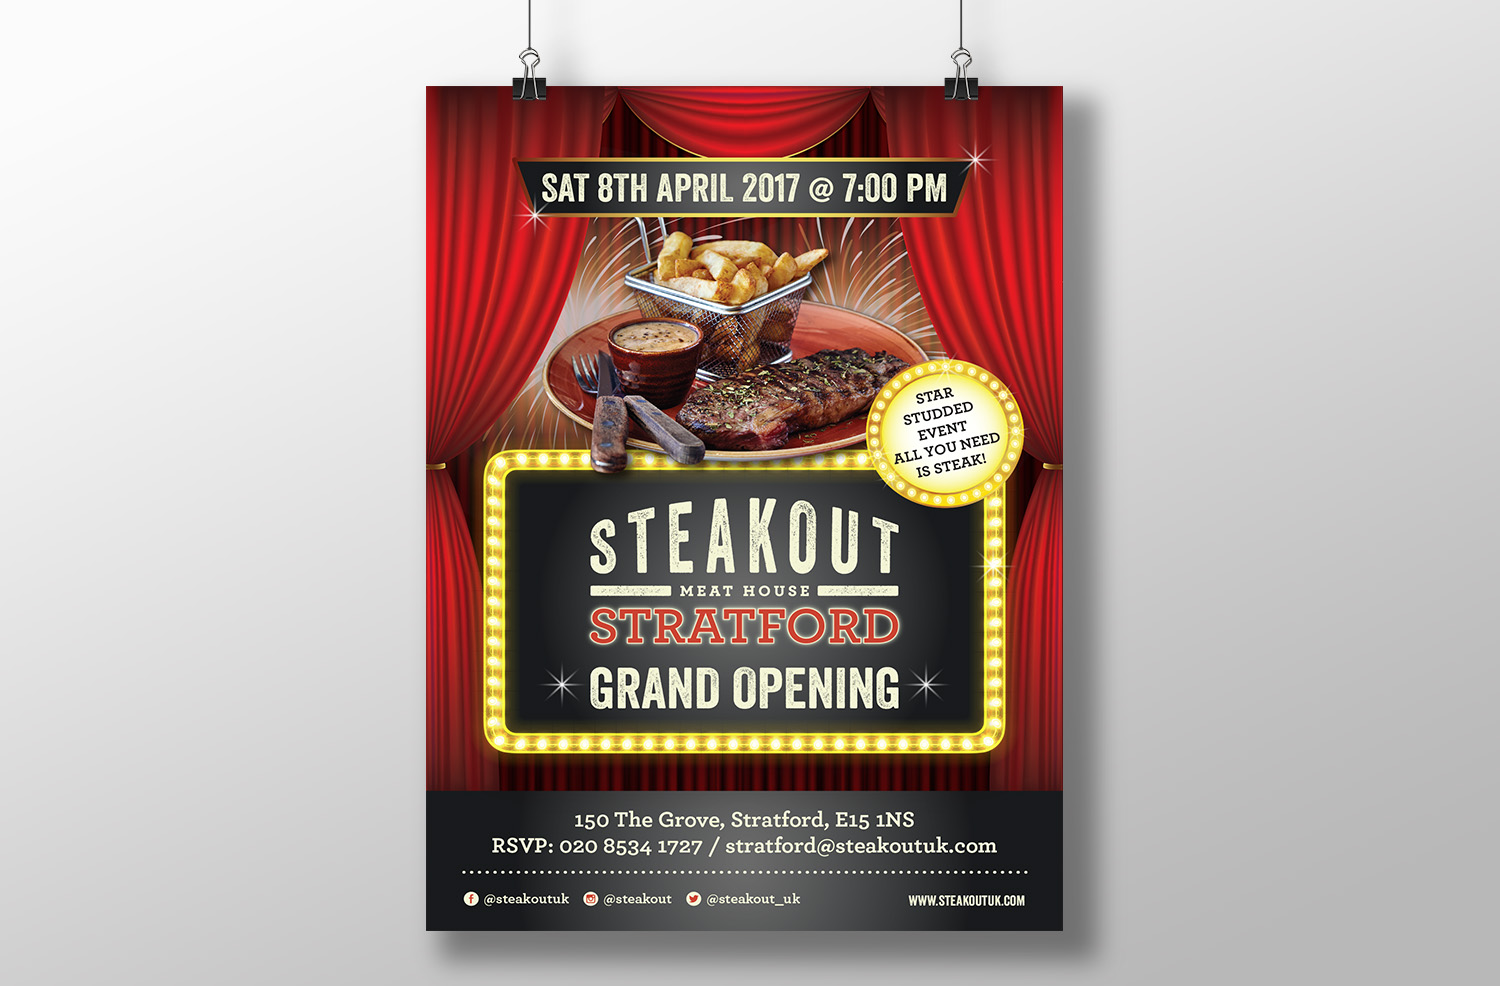 steakout-stratford-grand-opening-poster.jpg